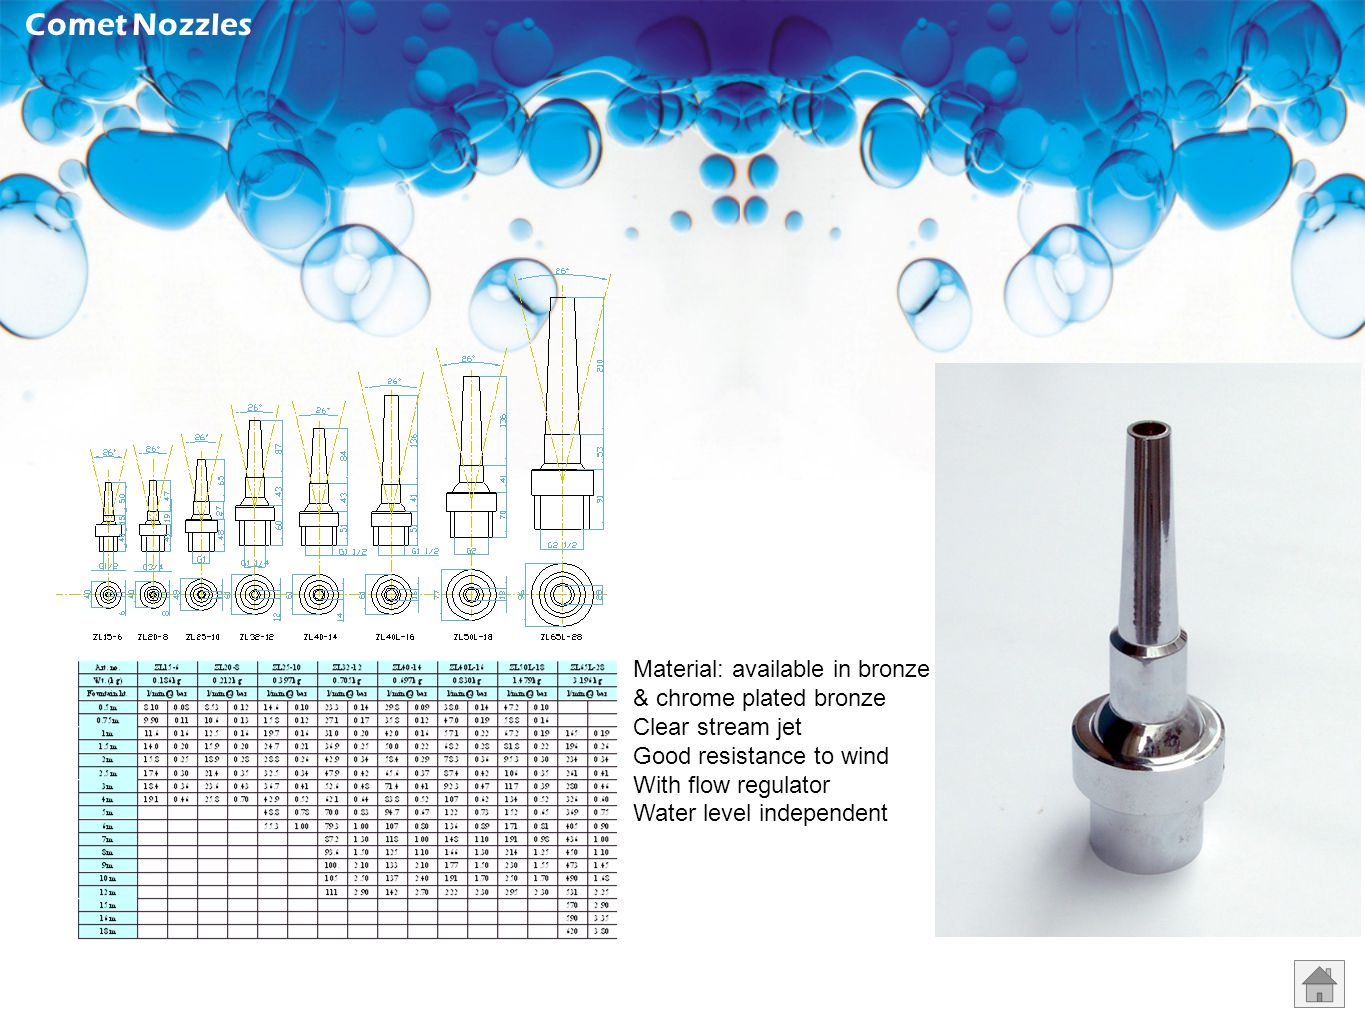 Comet Nozzles Material: available in bronze & chrome plated bronze